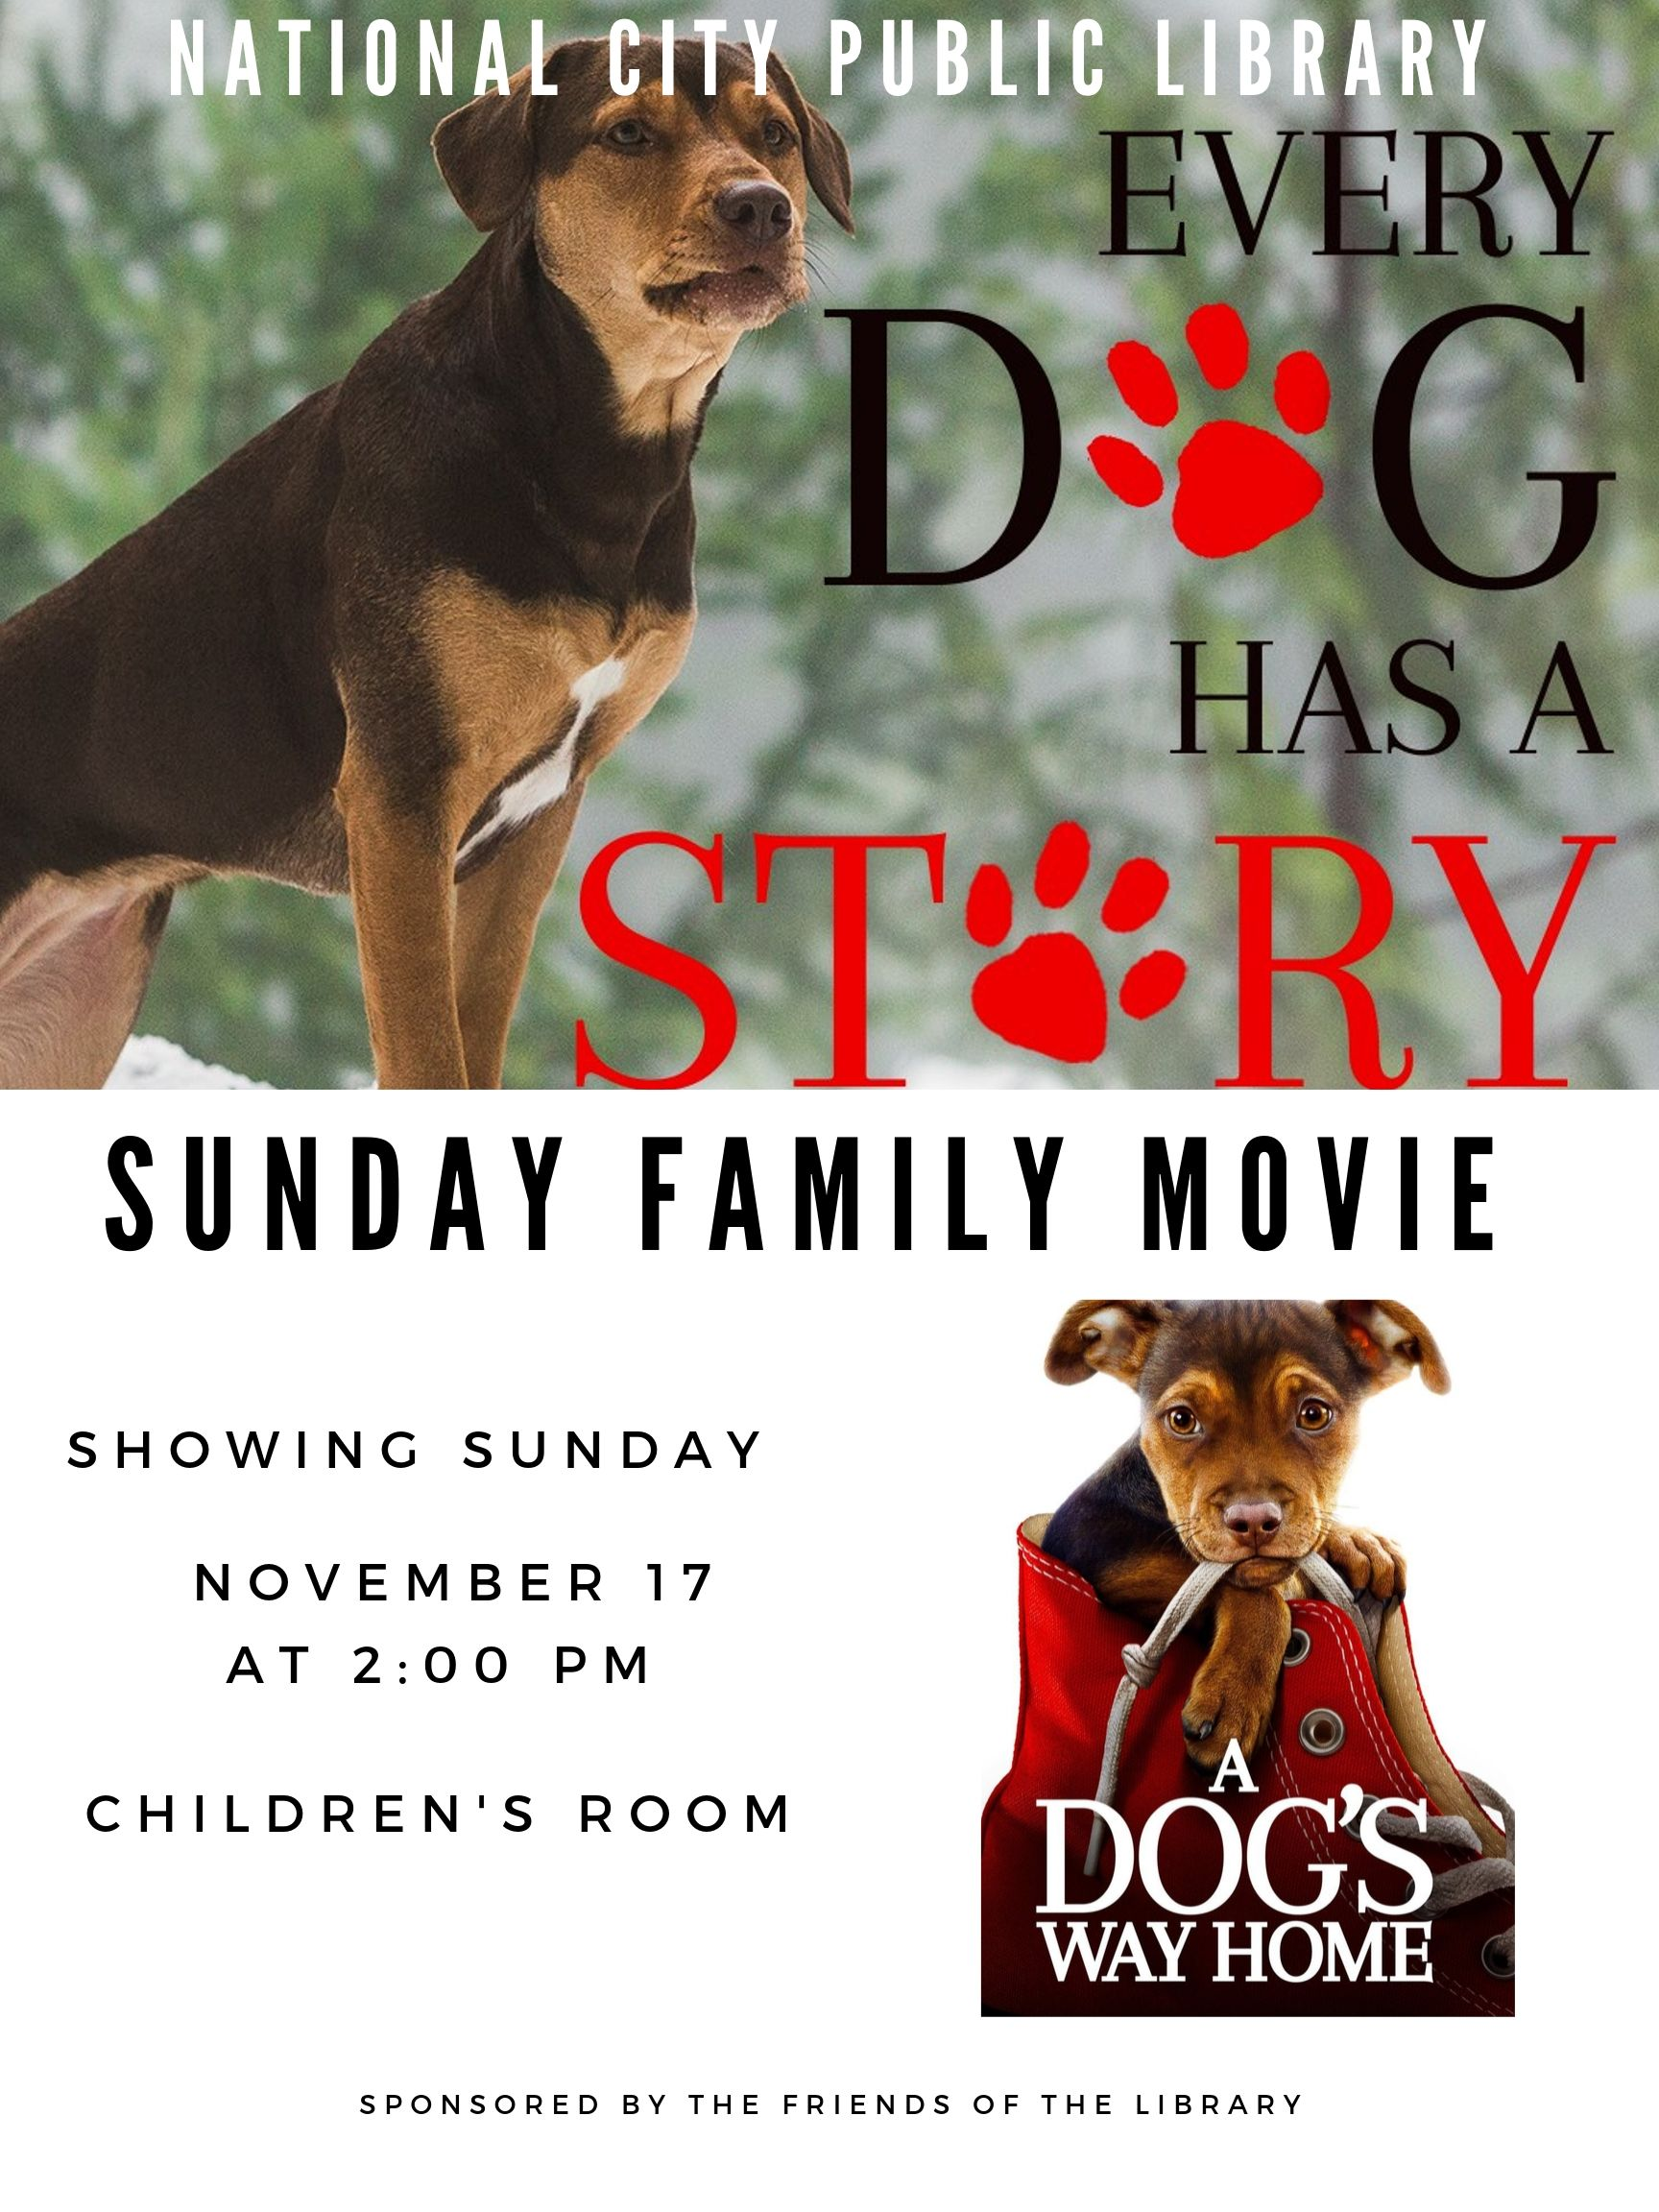 Family Movie Nov. 17 A Dog's Way Home